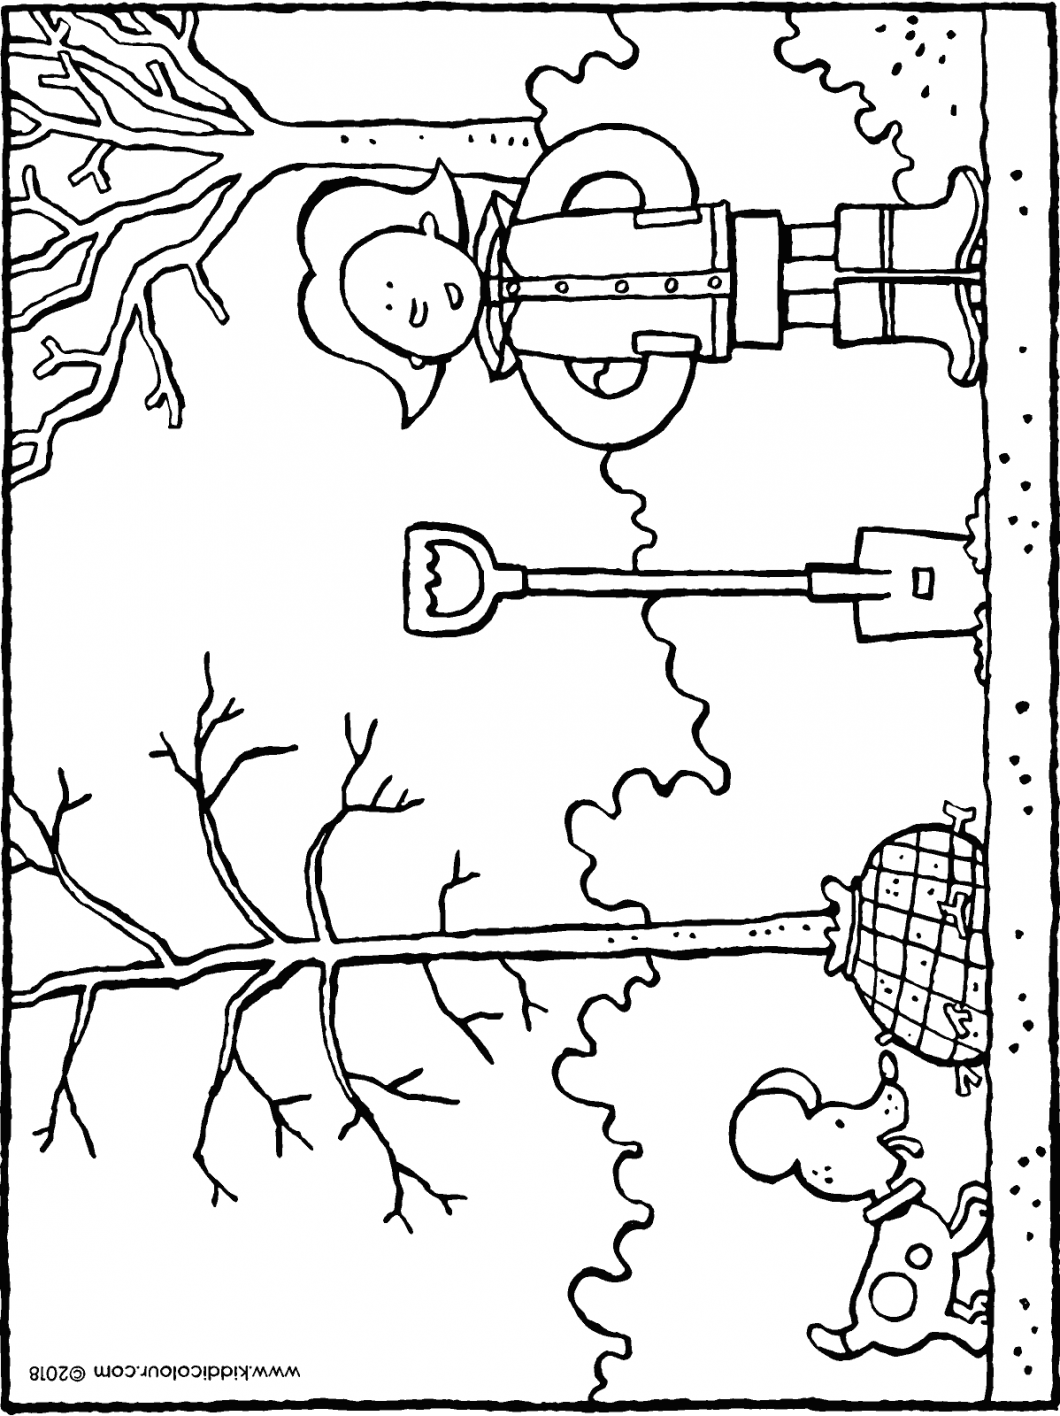 Emma plants a tree colouring page drawing picture 01H